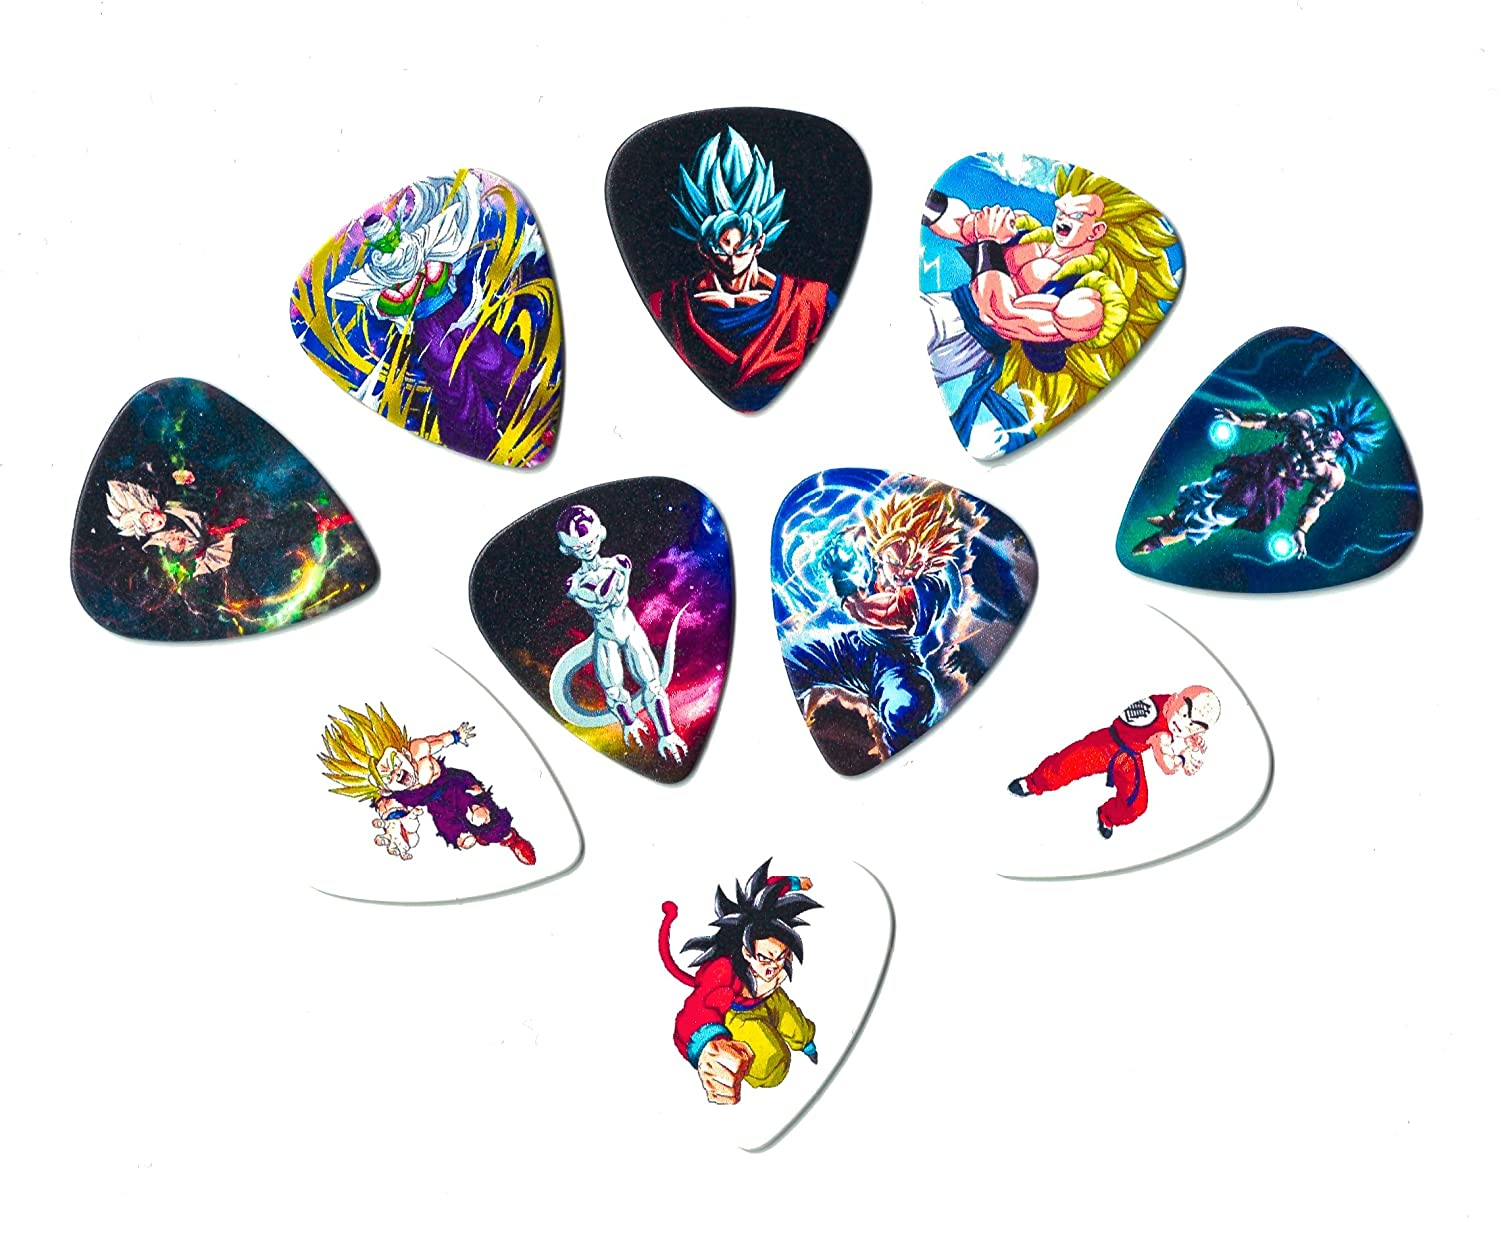 Amazon.com: Dragon Ball Z Guitar Picks (10 medium picks in a packet ...